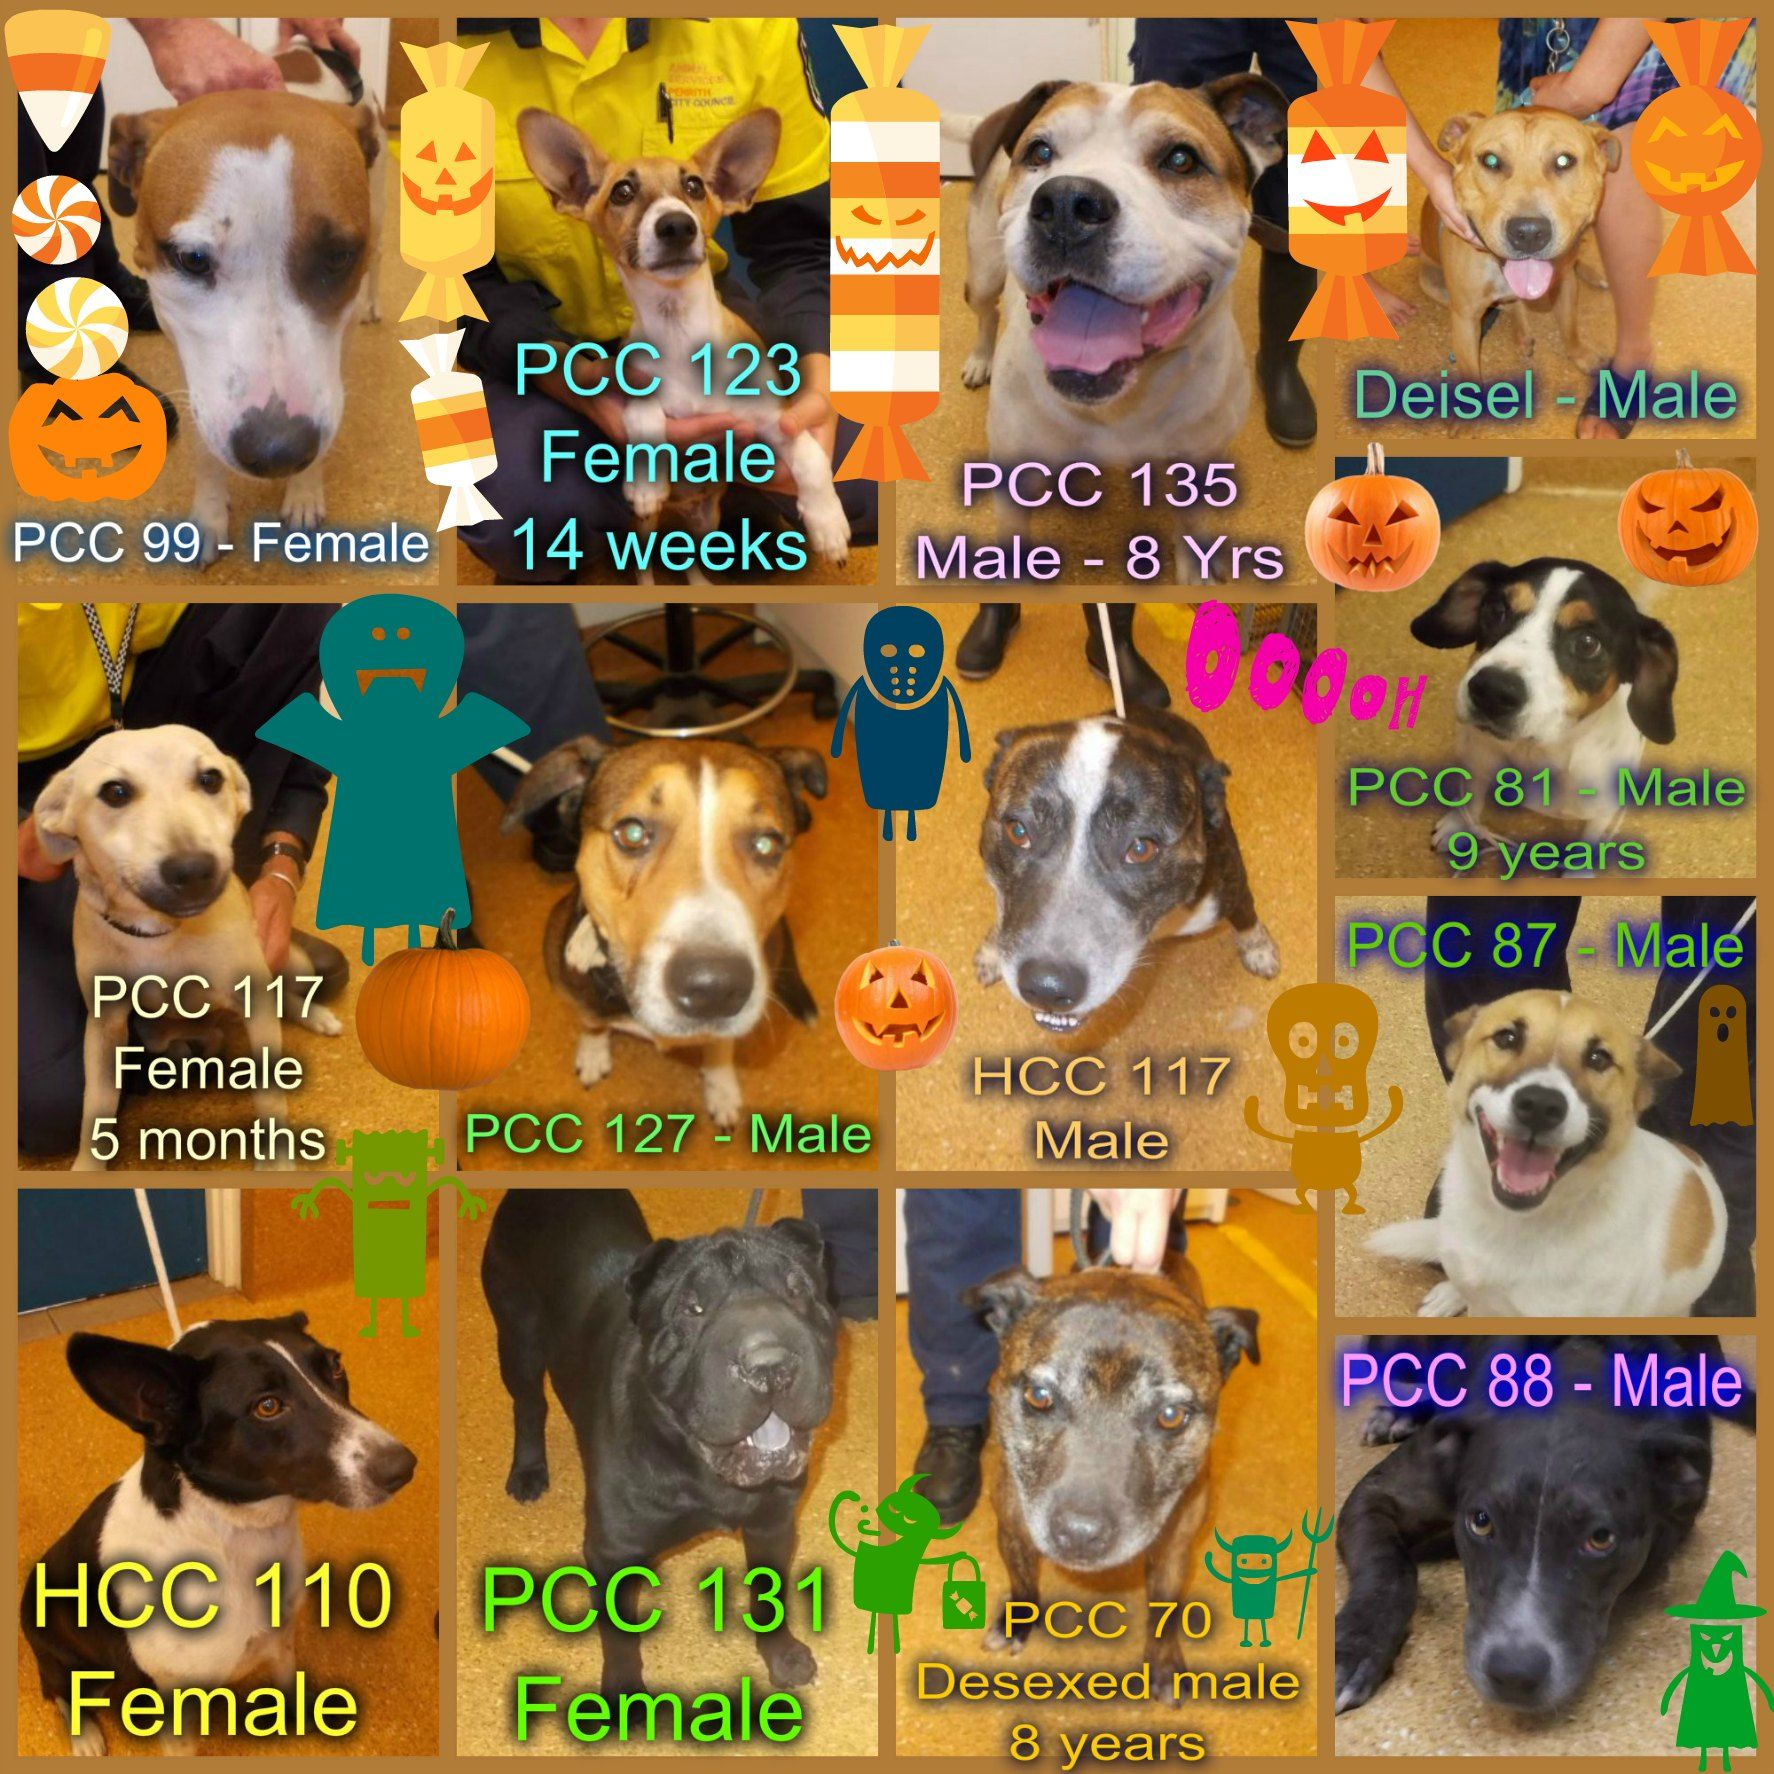 These Dogs Which Include 3 Seniors Need A Rescue Or Adoption Asap If You Are A Rescue Or Know A Rescue That Can H Puppy Adoption Pet Adoption Animal Shelter